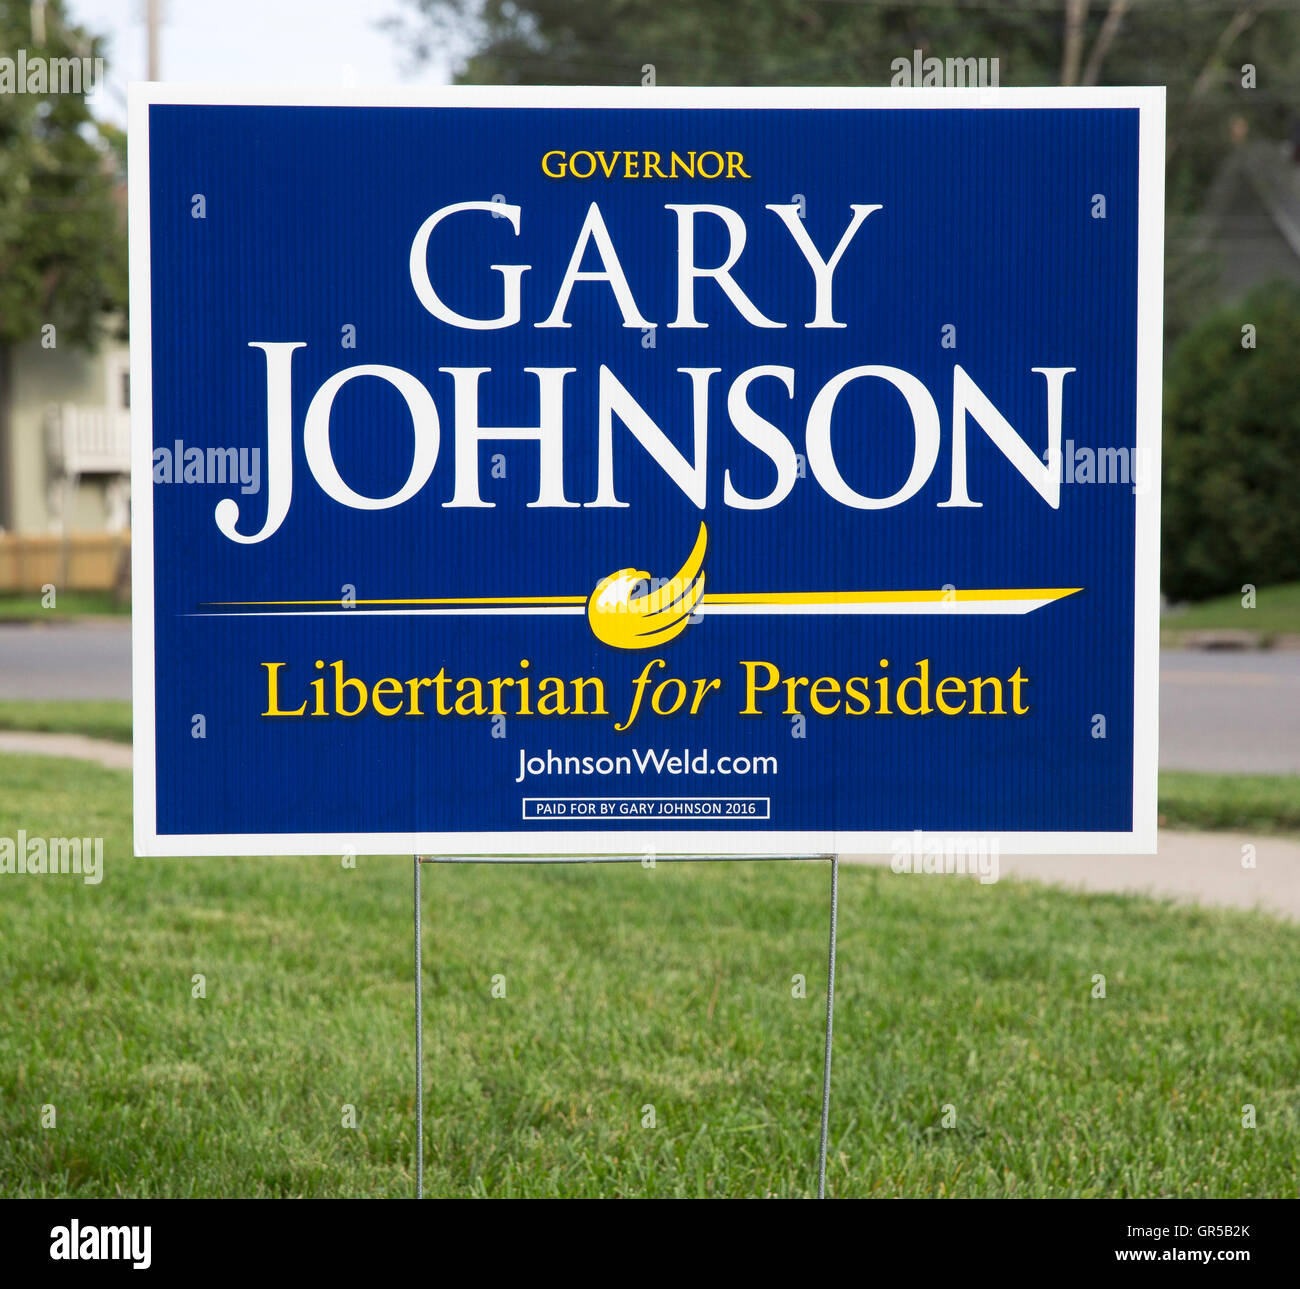 2016 yard sign for Libertarian candidate Gary Johnson for United States president - Stock Image